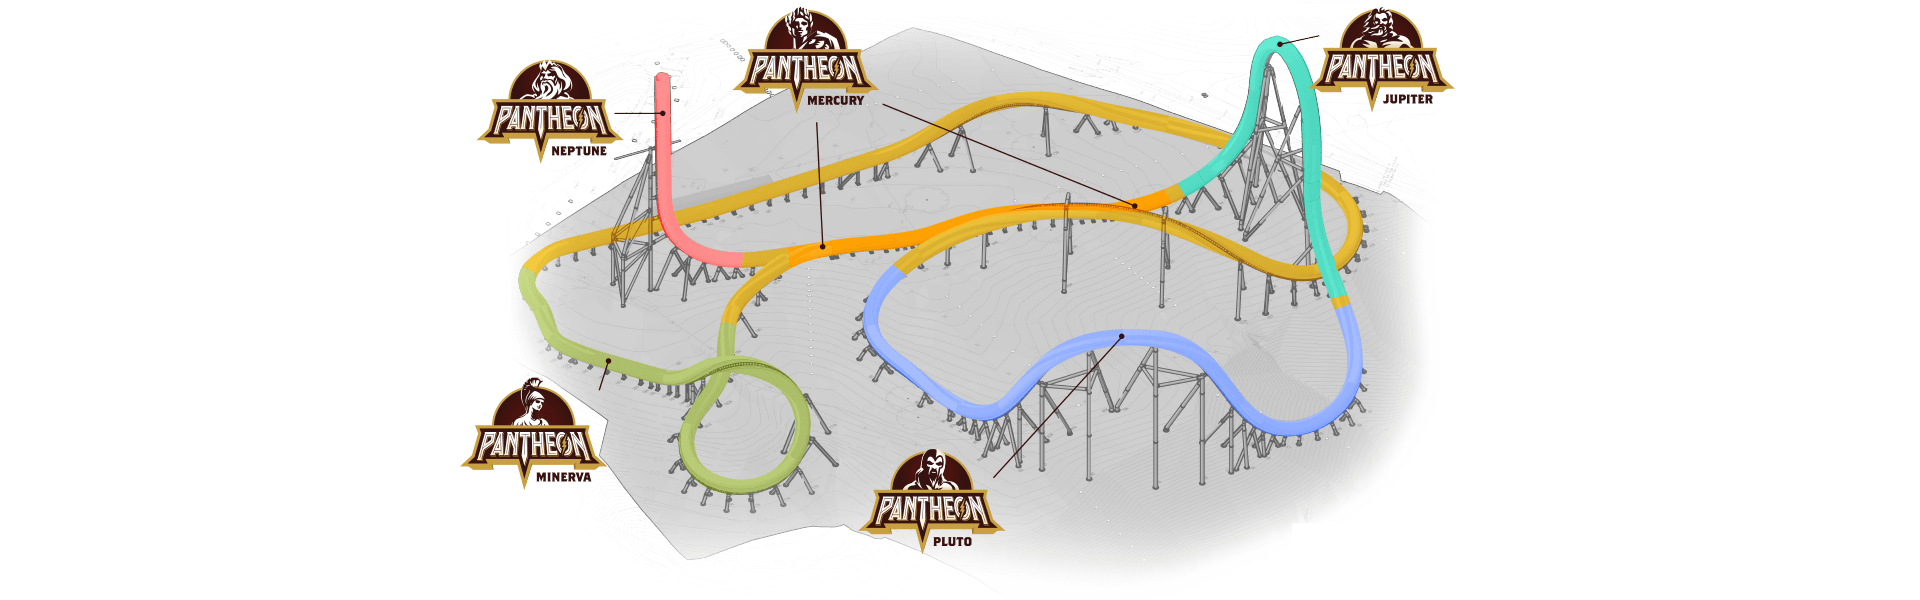 Pantheon all-new roller coaster coming in 2020!